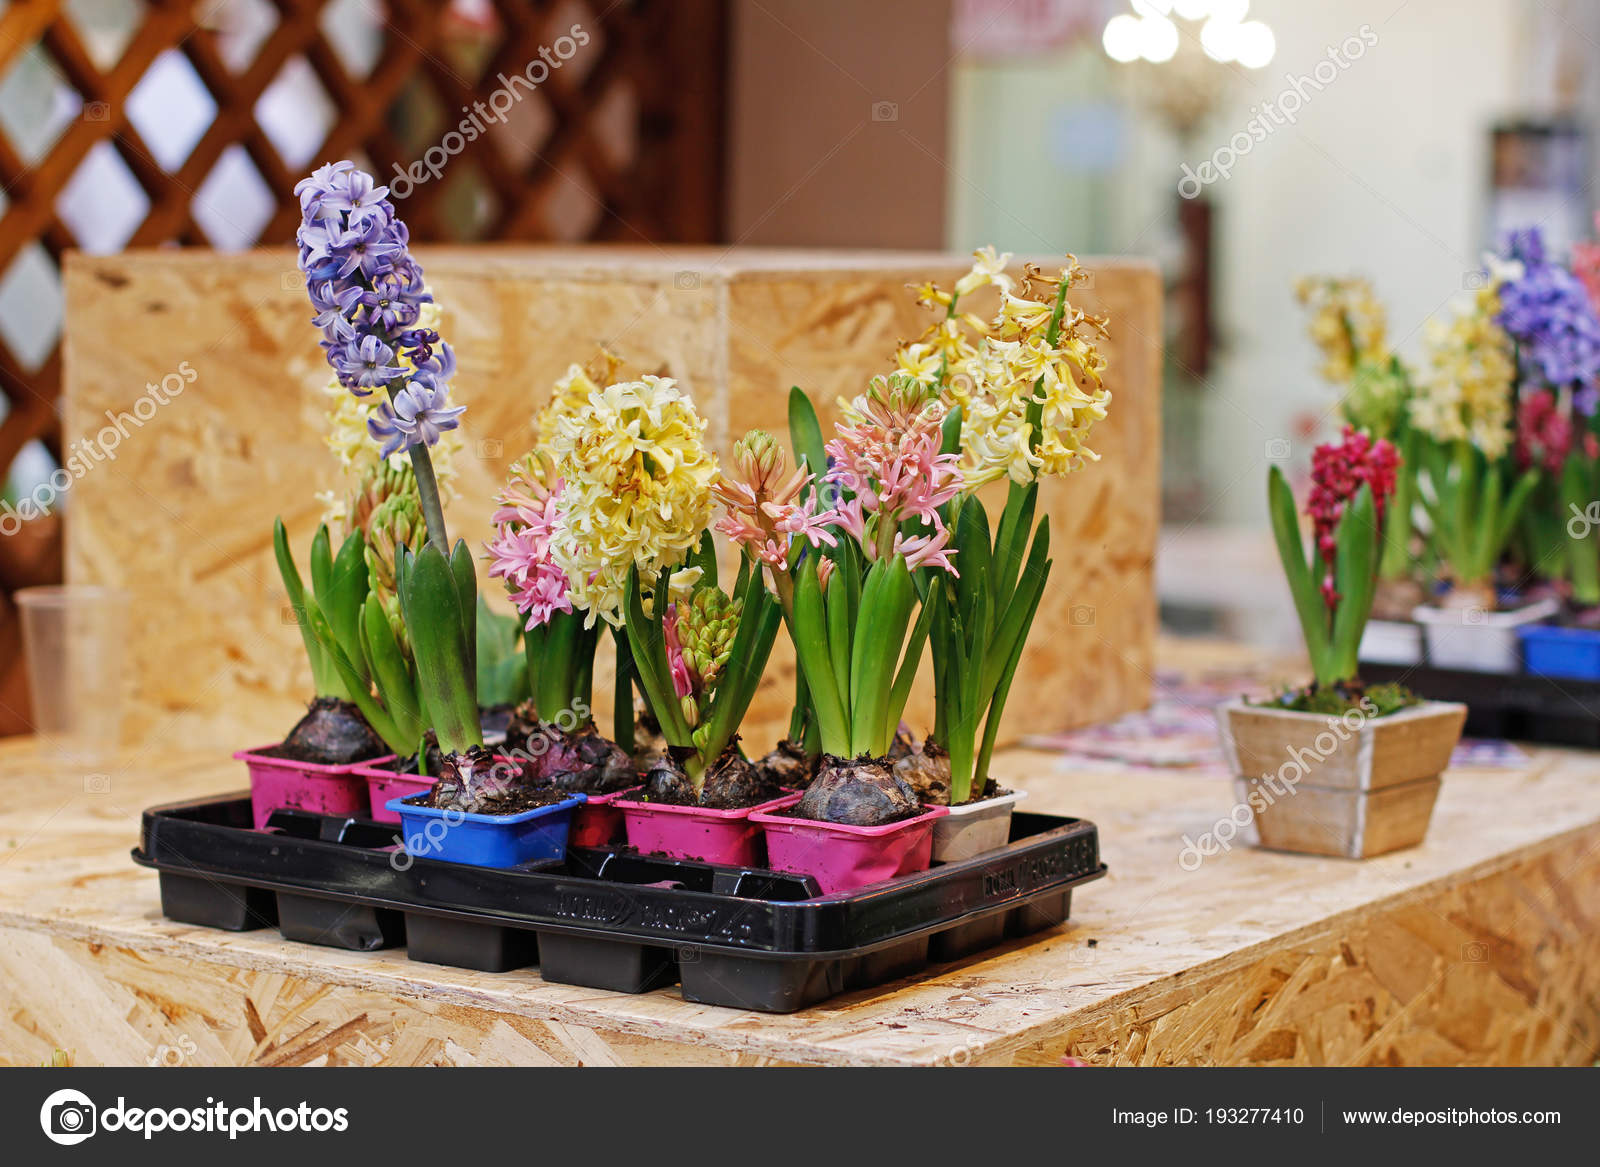 Colorful Beautiful Hyacinth Flowers Plastic Flower Pots Stand